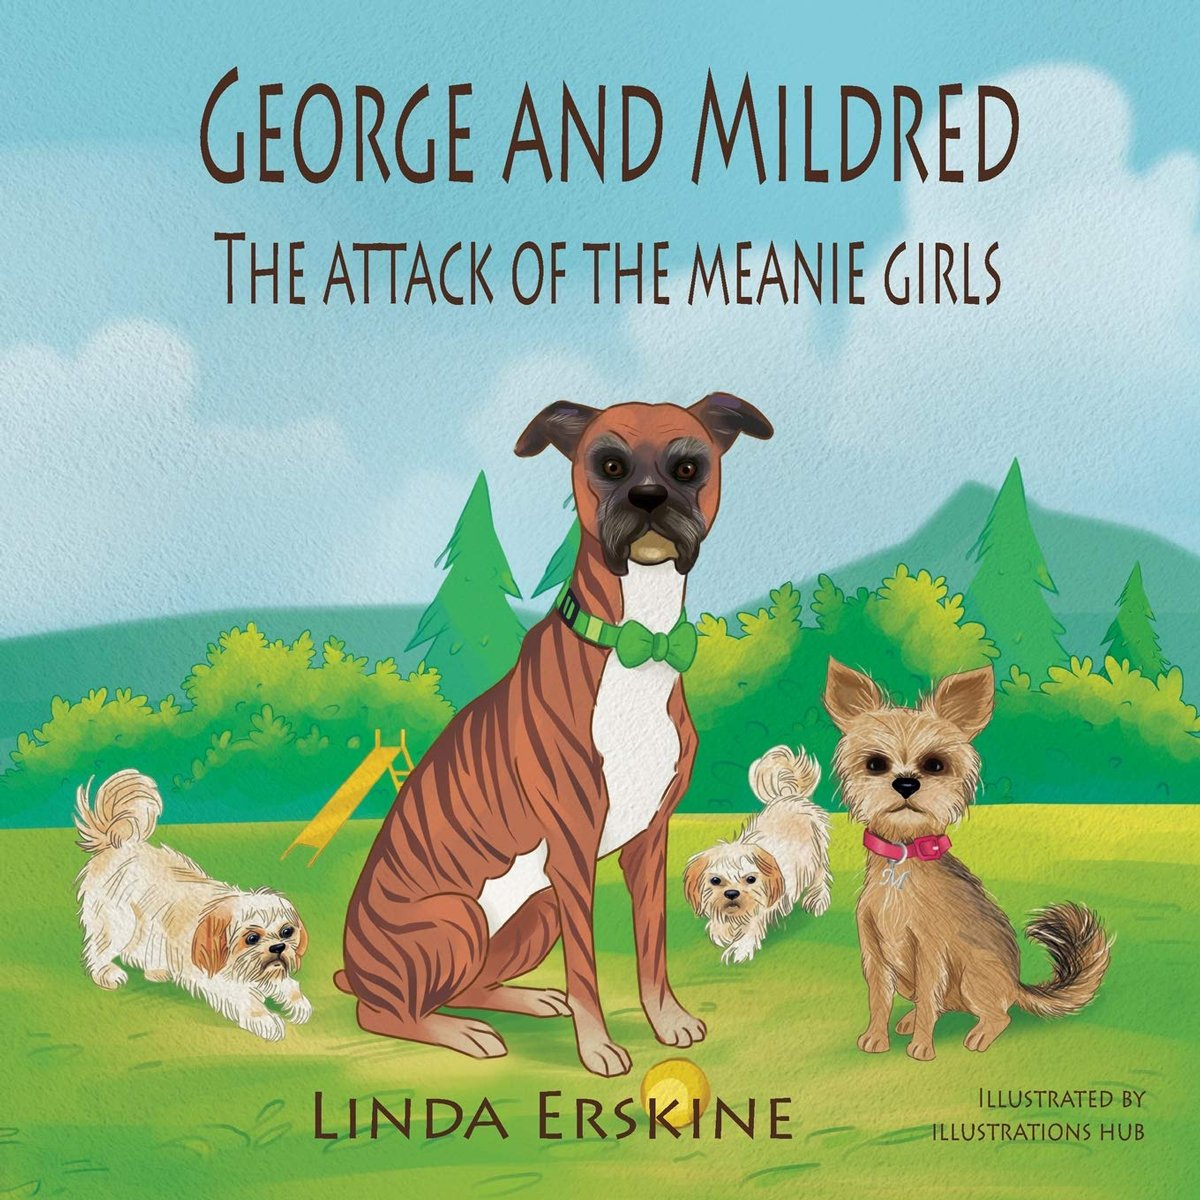 George and Mildred by Linda Erskine